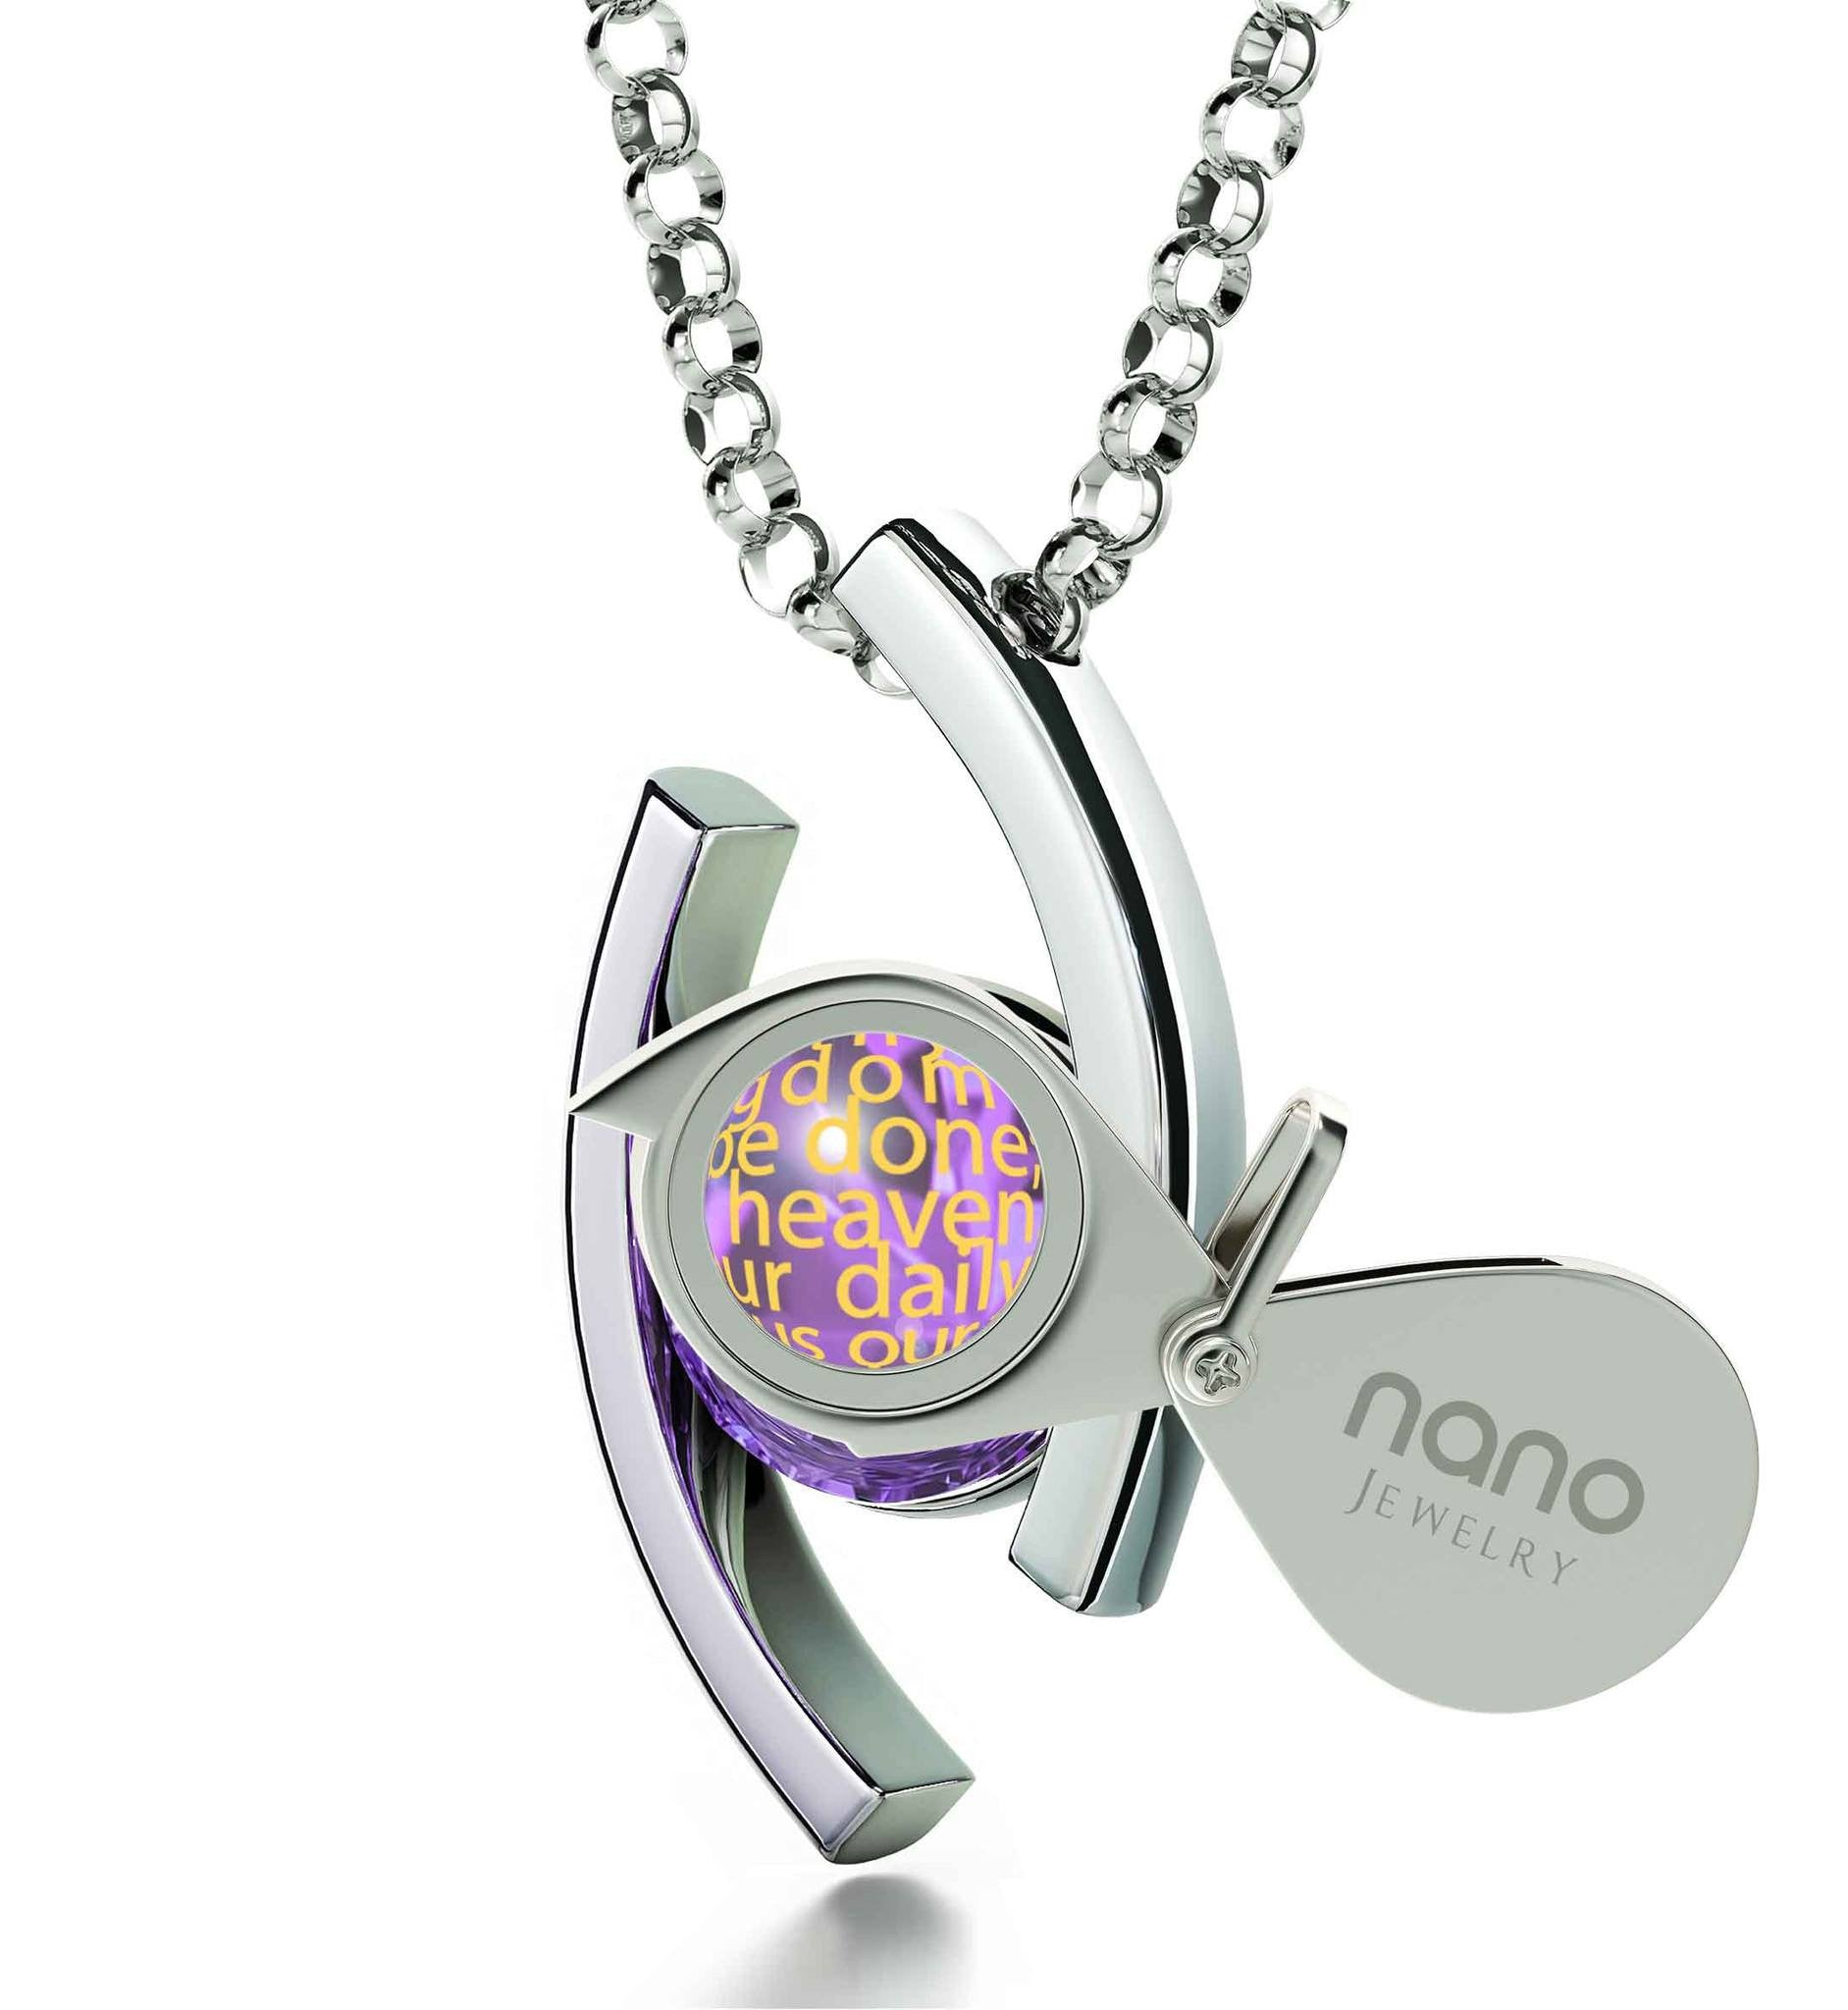 """Lord's Prayer Pendant, Cute Necklaces for Her, Great Gifts for Wife, Jewelry Religious, Nano"""